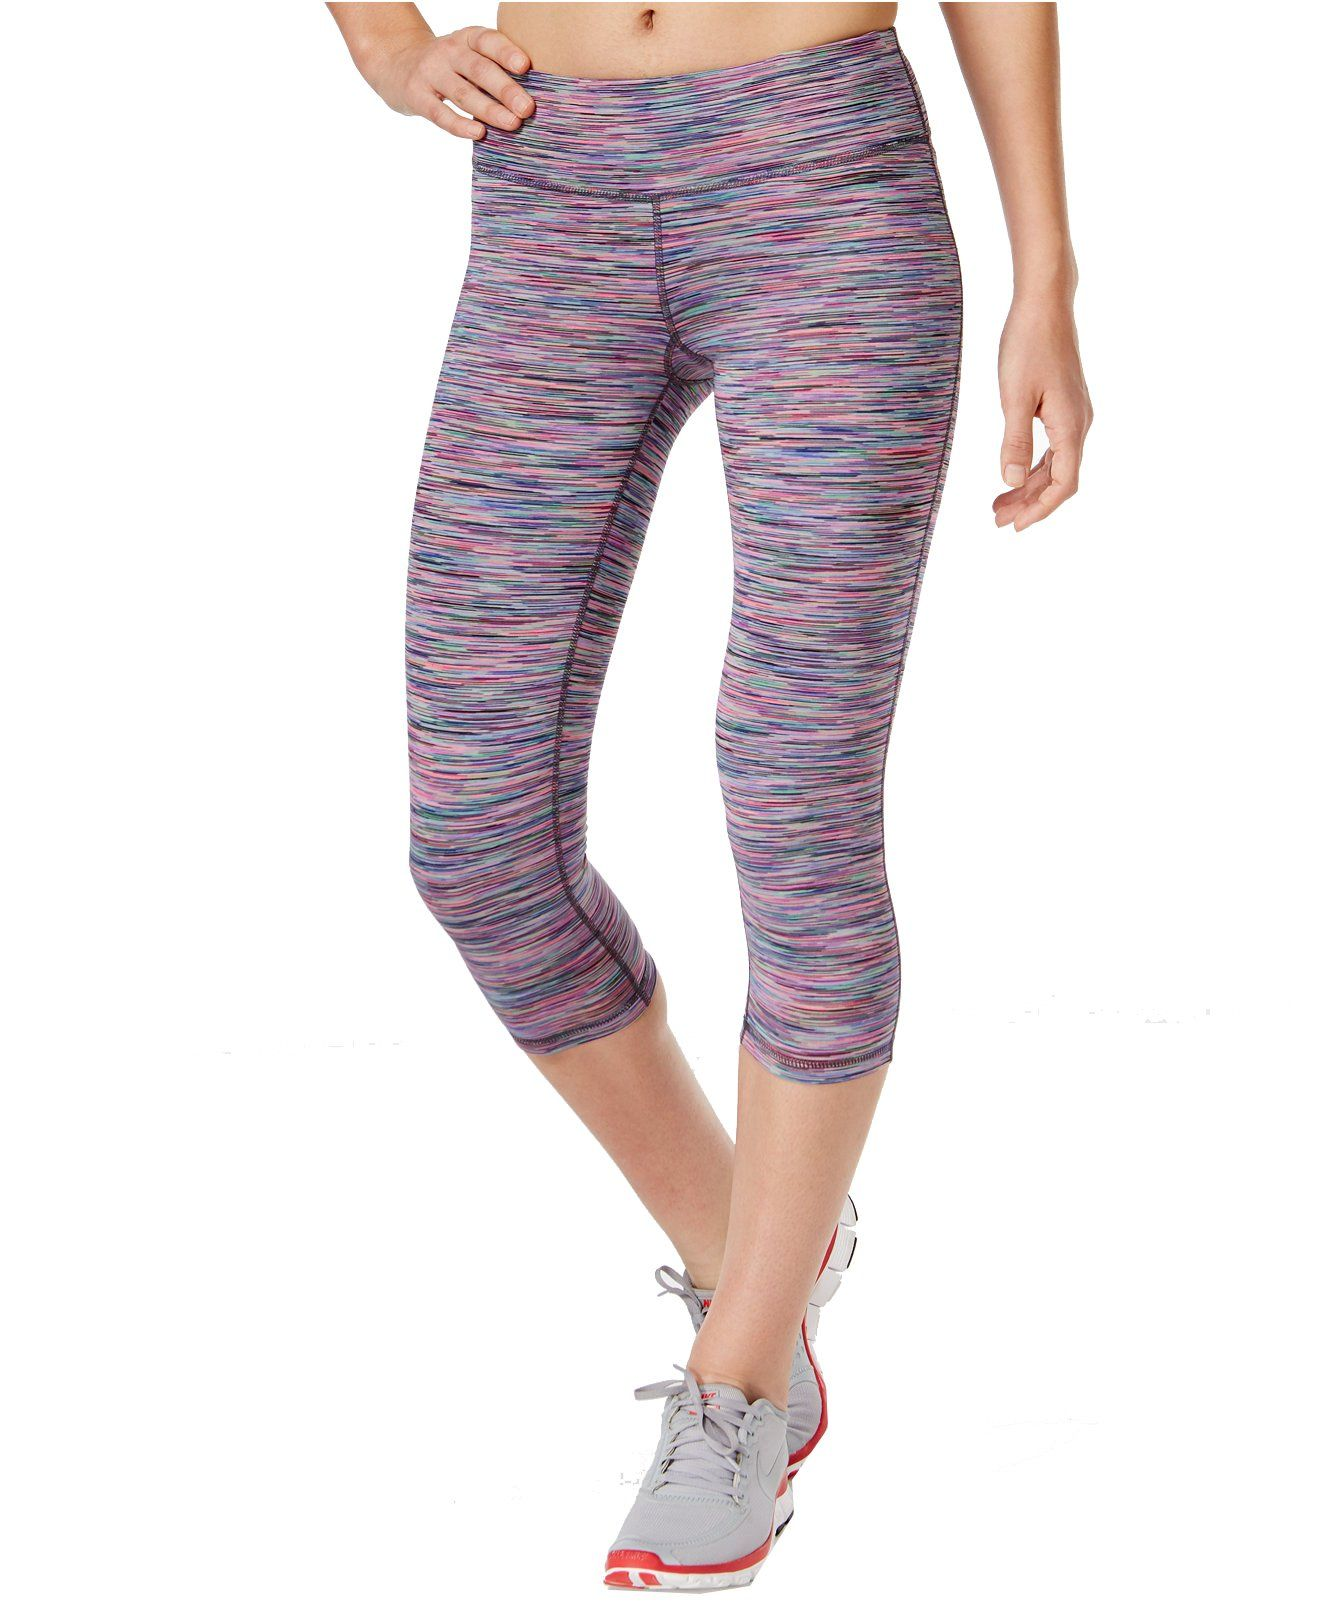 81c103c65f5a64 Ideology Women's Space-Dyed Cropped Leggings (XS, Multi Space Dye). Mid